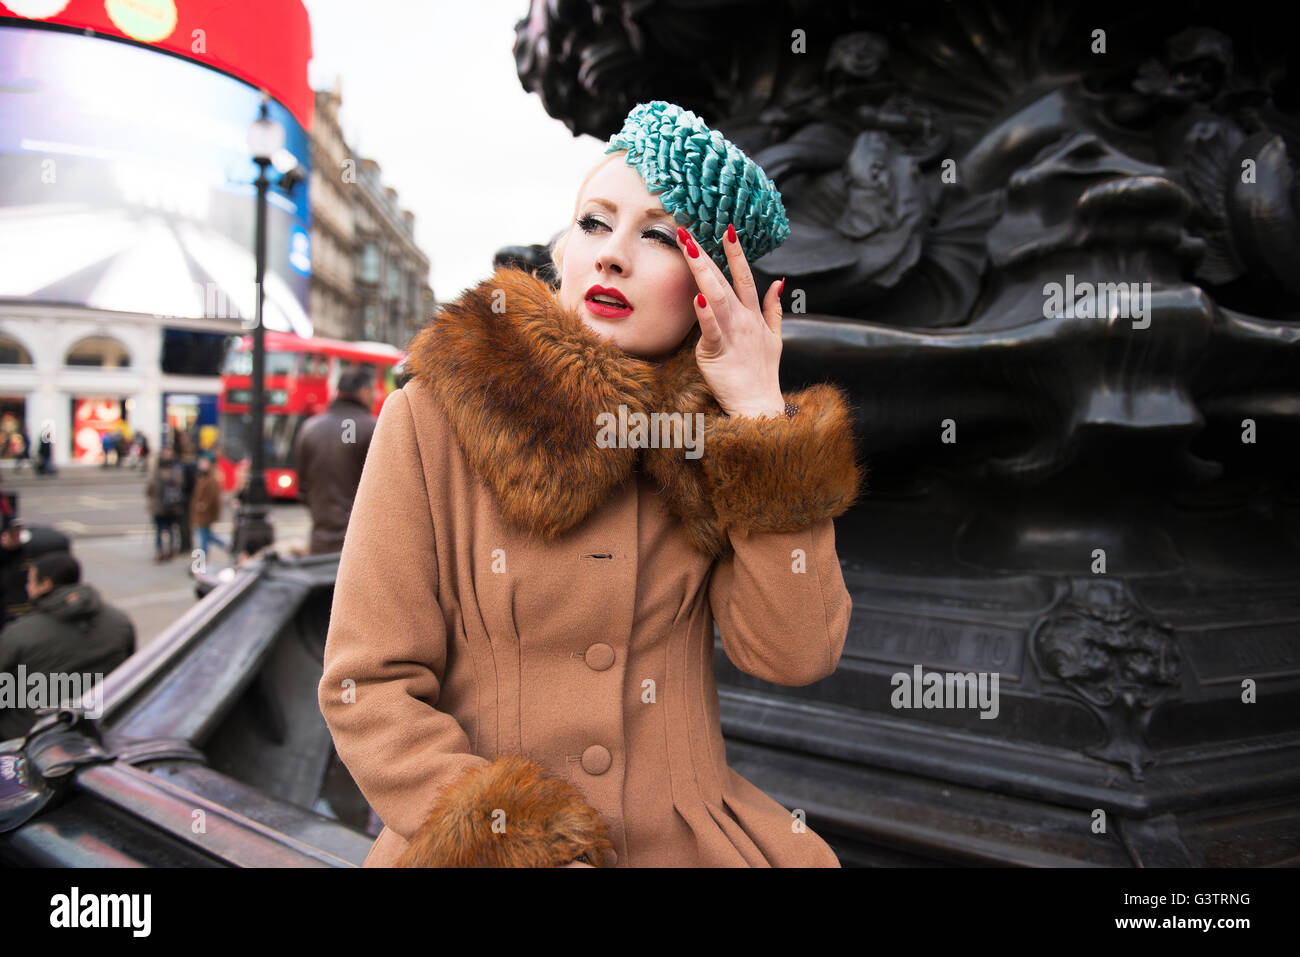 A stylish young woman dressed in 1930s style clothing standing by the statue of Eros at Piccadilly Circus. - Stock Image